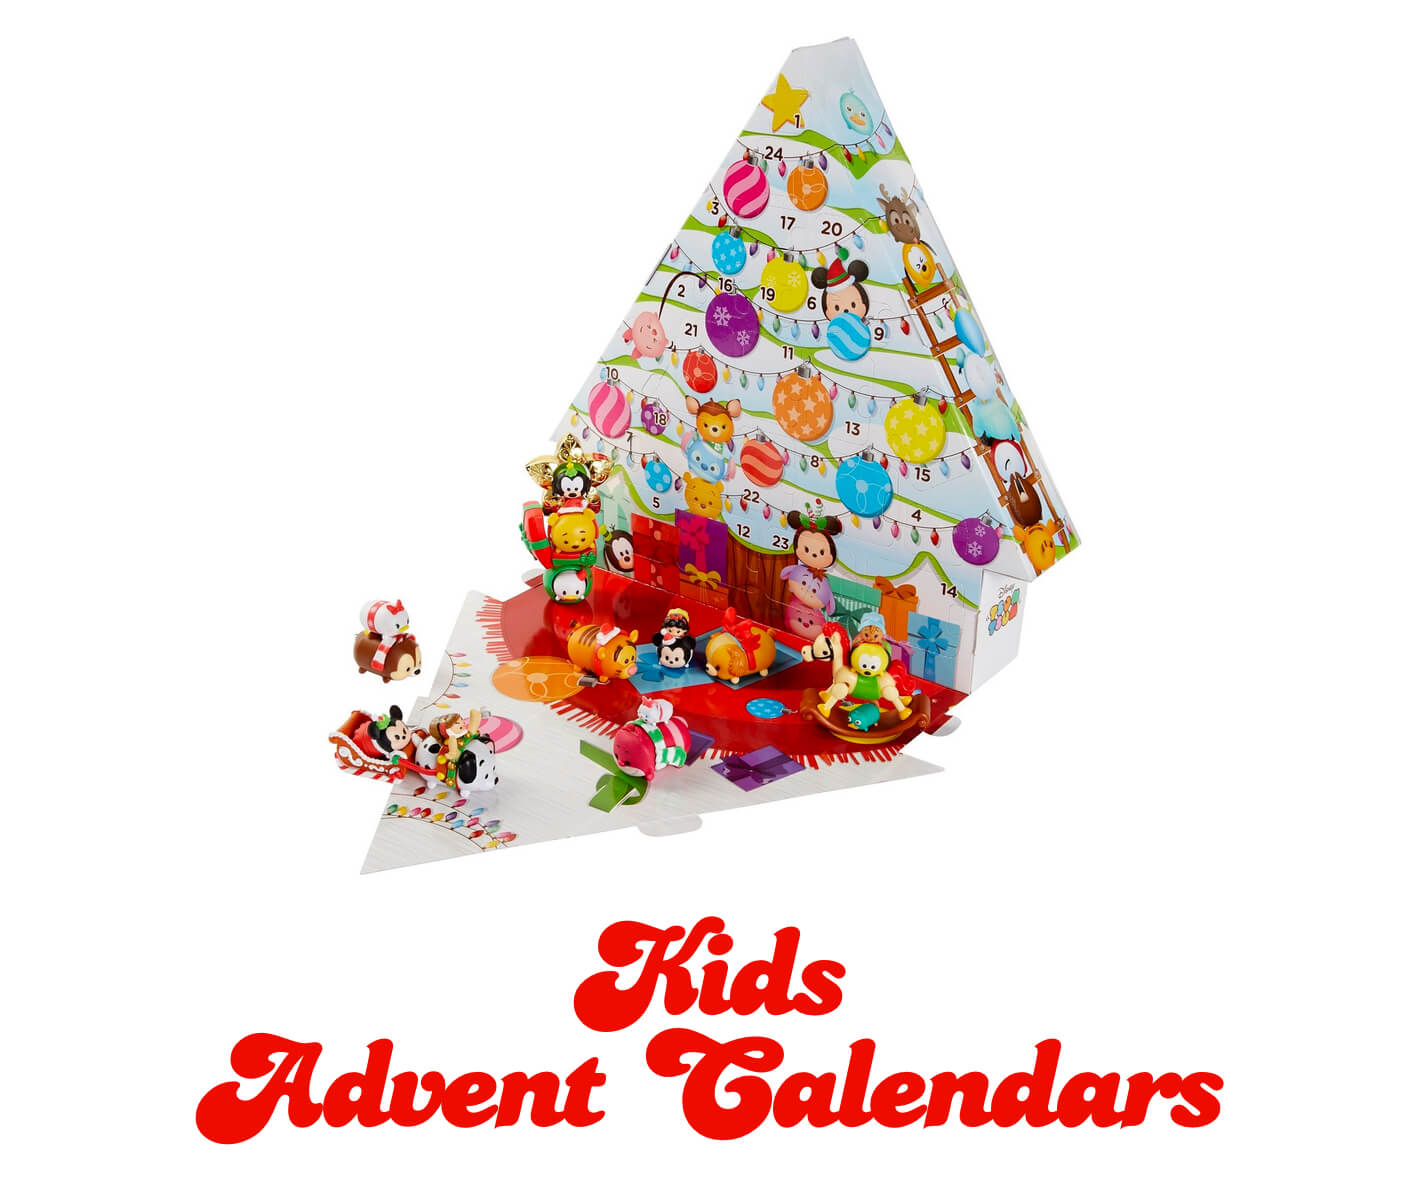 kids advent calendars 2016